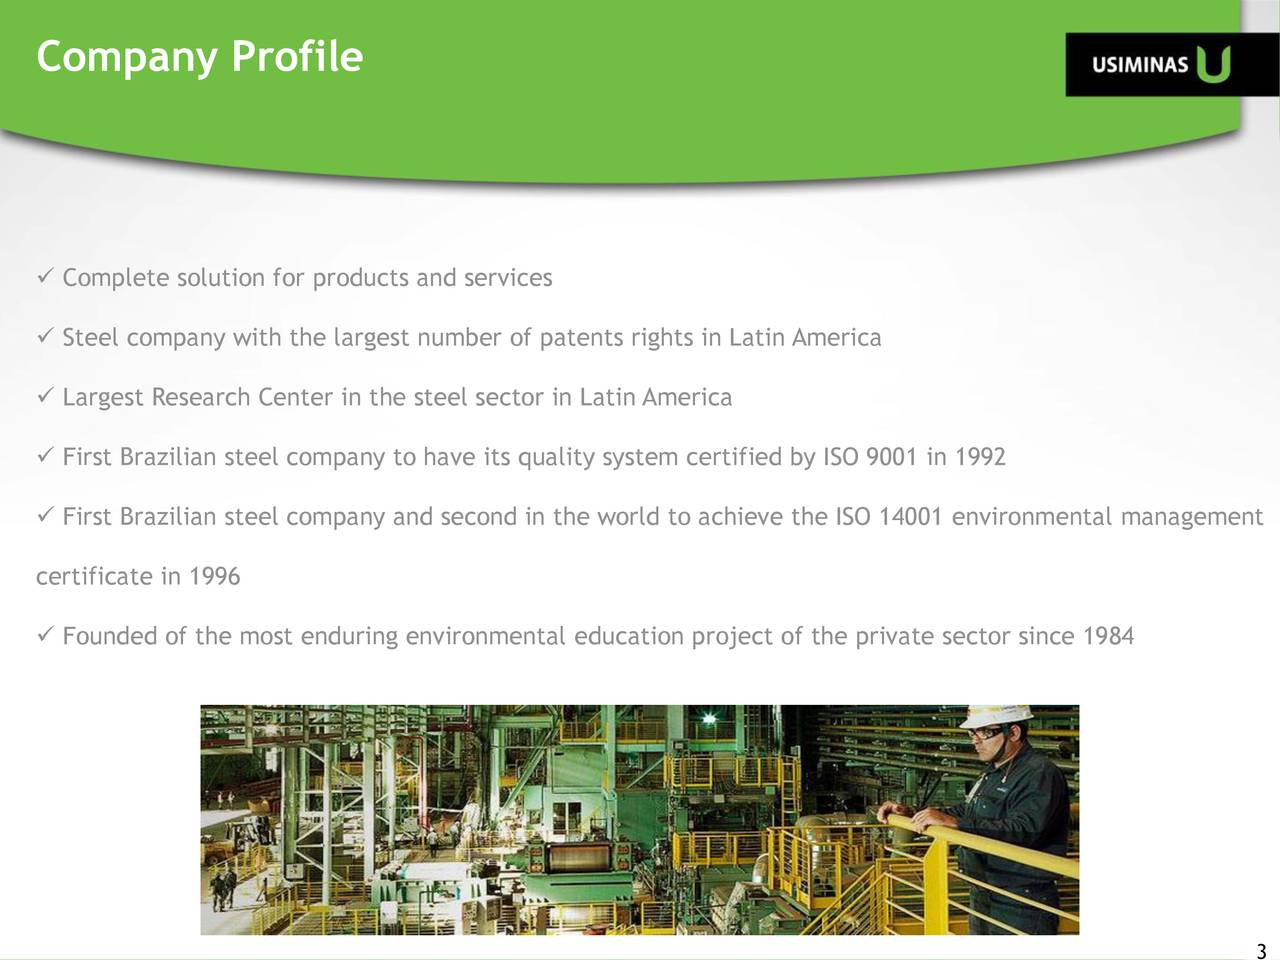  Complete solution for products and services  Steel company with the largest number of patents rights in Latin America  Largest Research Center in the steel sector in Latin America  First Brazilian steel company to have its quality system certified by ISO 9001 in 1992  First Brazilian steel company and second in the world to achieve the ISO 14001 environmental management certificate in 1996  Founded of the most enduring environmental education project of the private sector since 1984